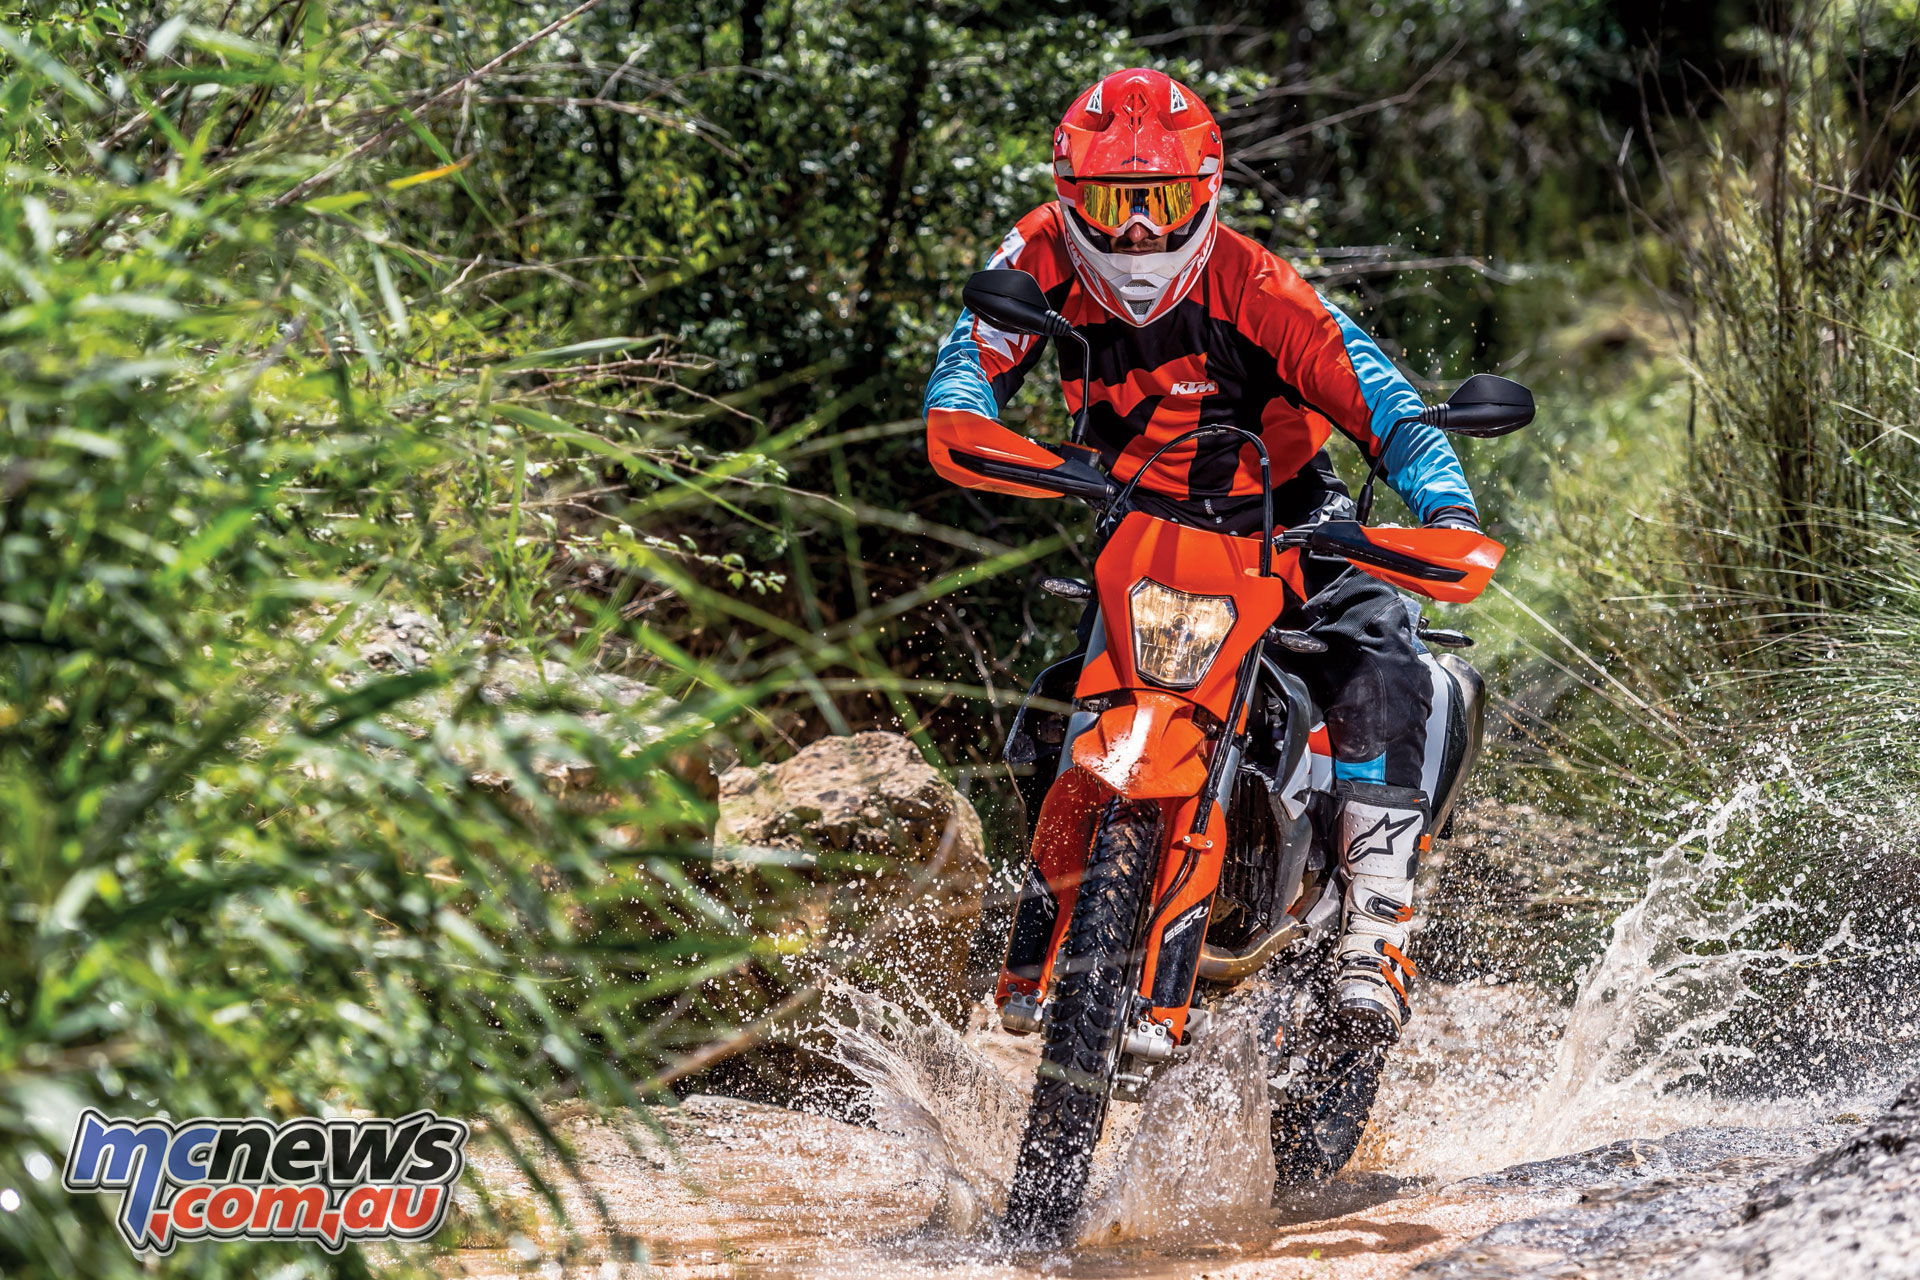 2019 KTM 690 Enduro R   More Power   Smoother Power   MCNews